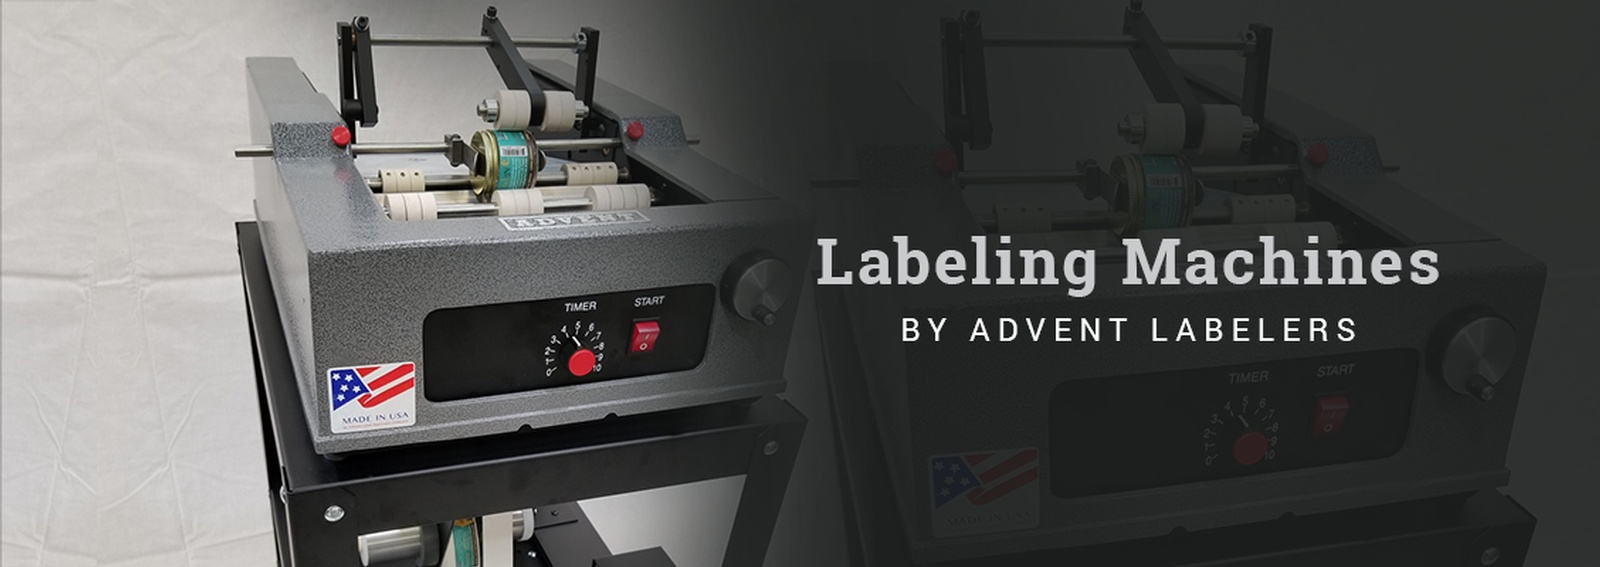 Labeling Machines by Advent Labelers - Best Labeling Applicators Manufacturing Company in America